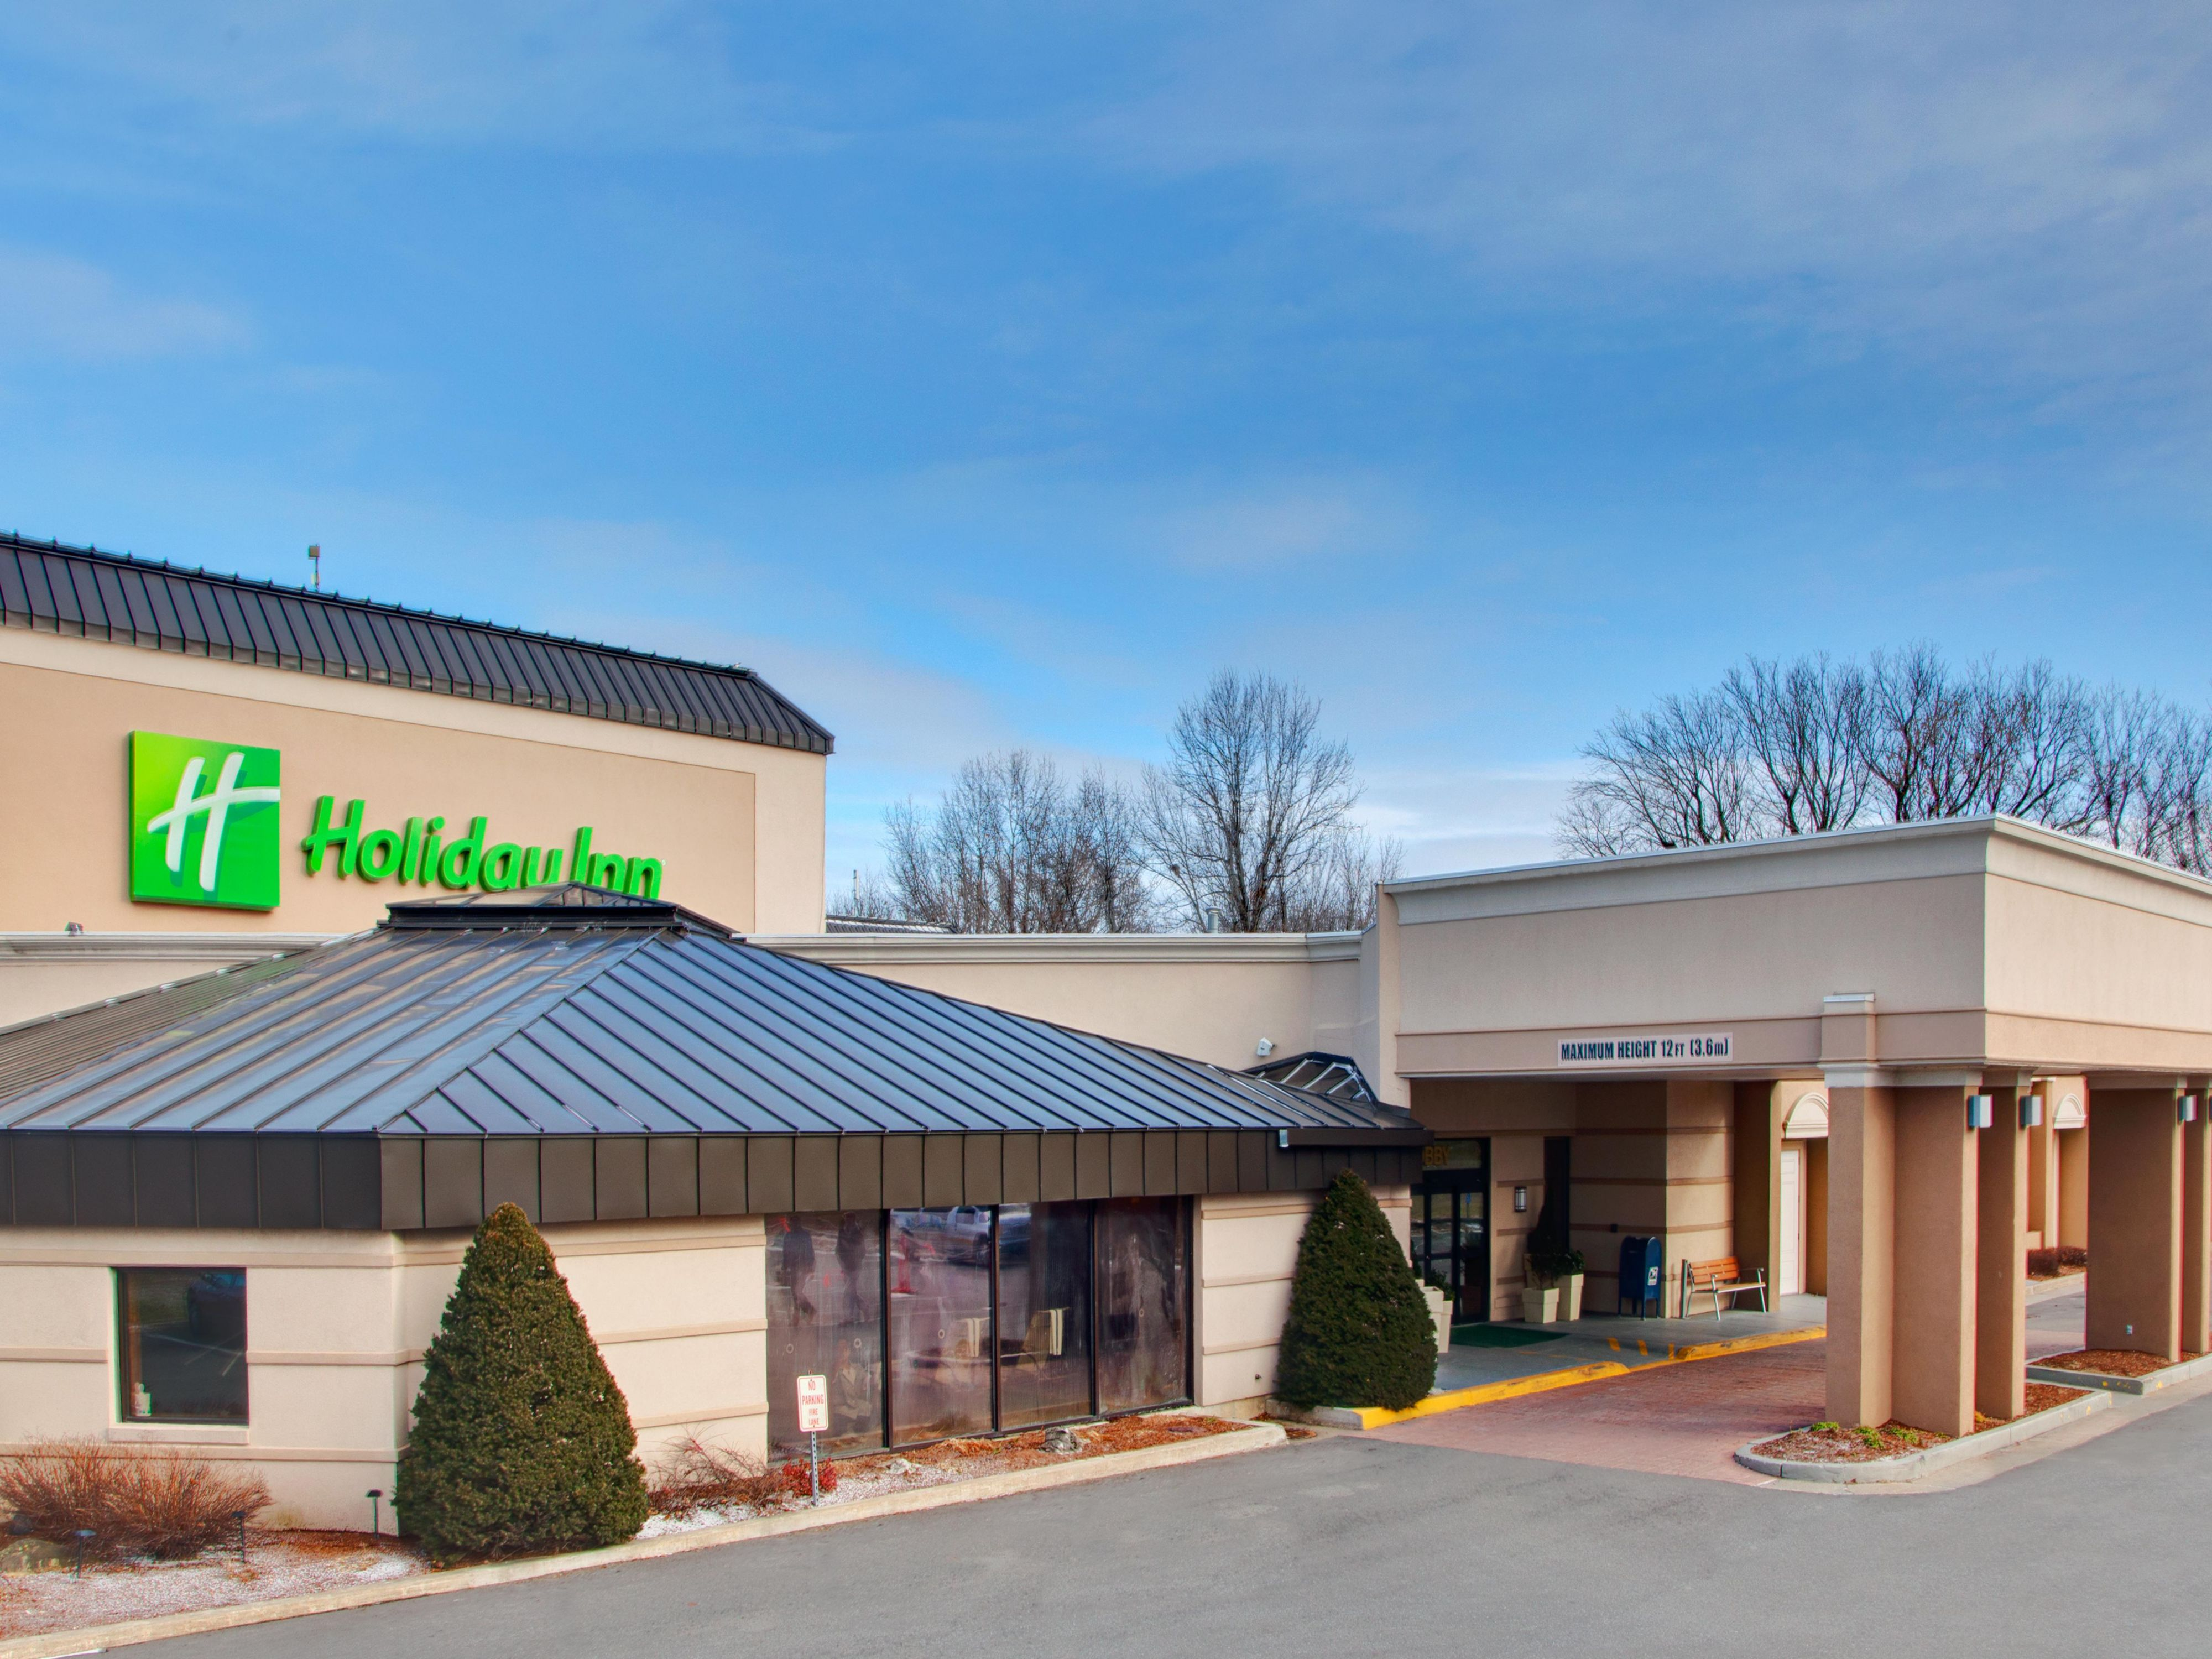 Welcome to the Holiday Inn Burlington!